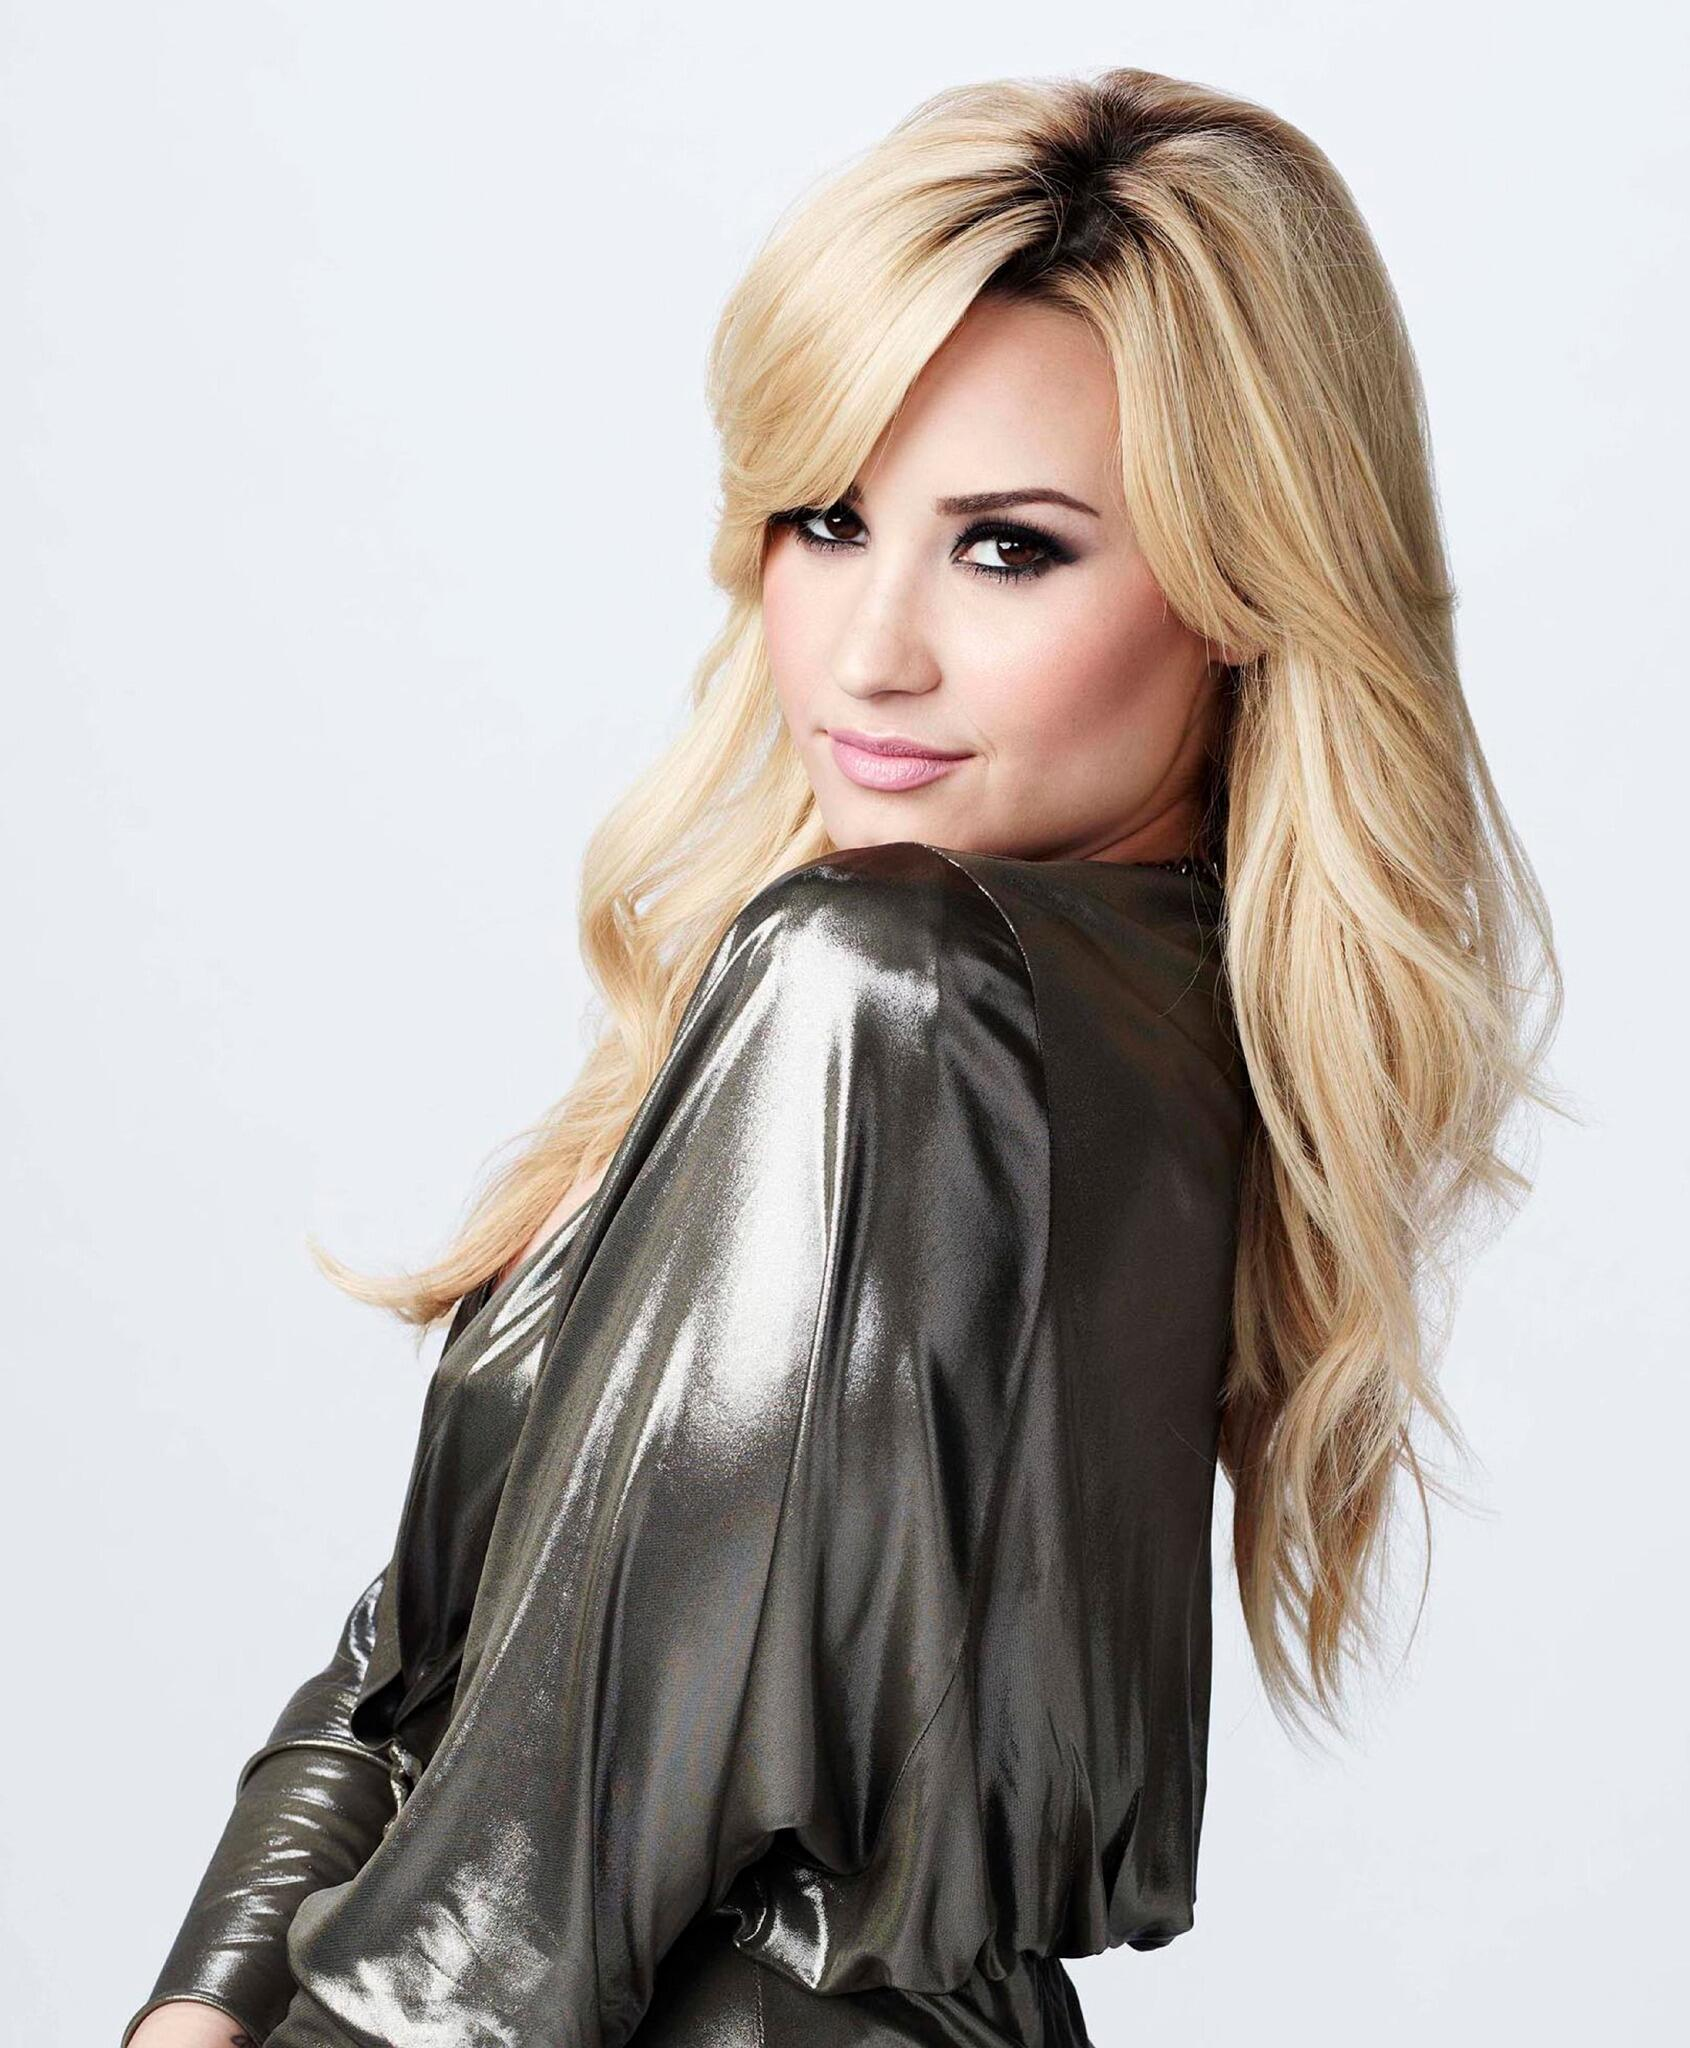 RT @GLEEonFOX: It's official! @TheXFactorUSA's @ddlovato will be joining the cast of #glee for Season 5! #DemiOnGlee http://t.co/UDrH9dgrpB